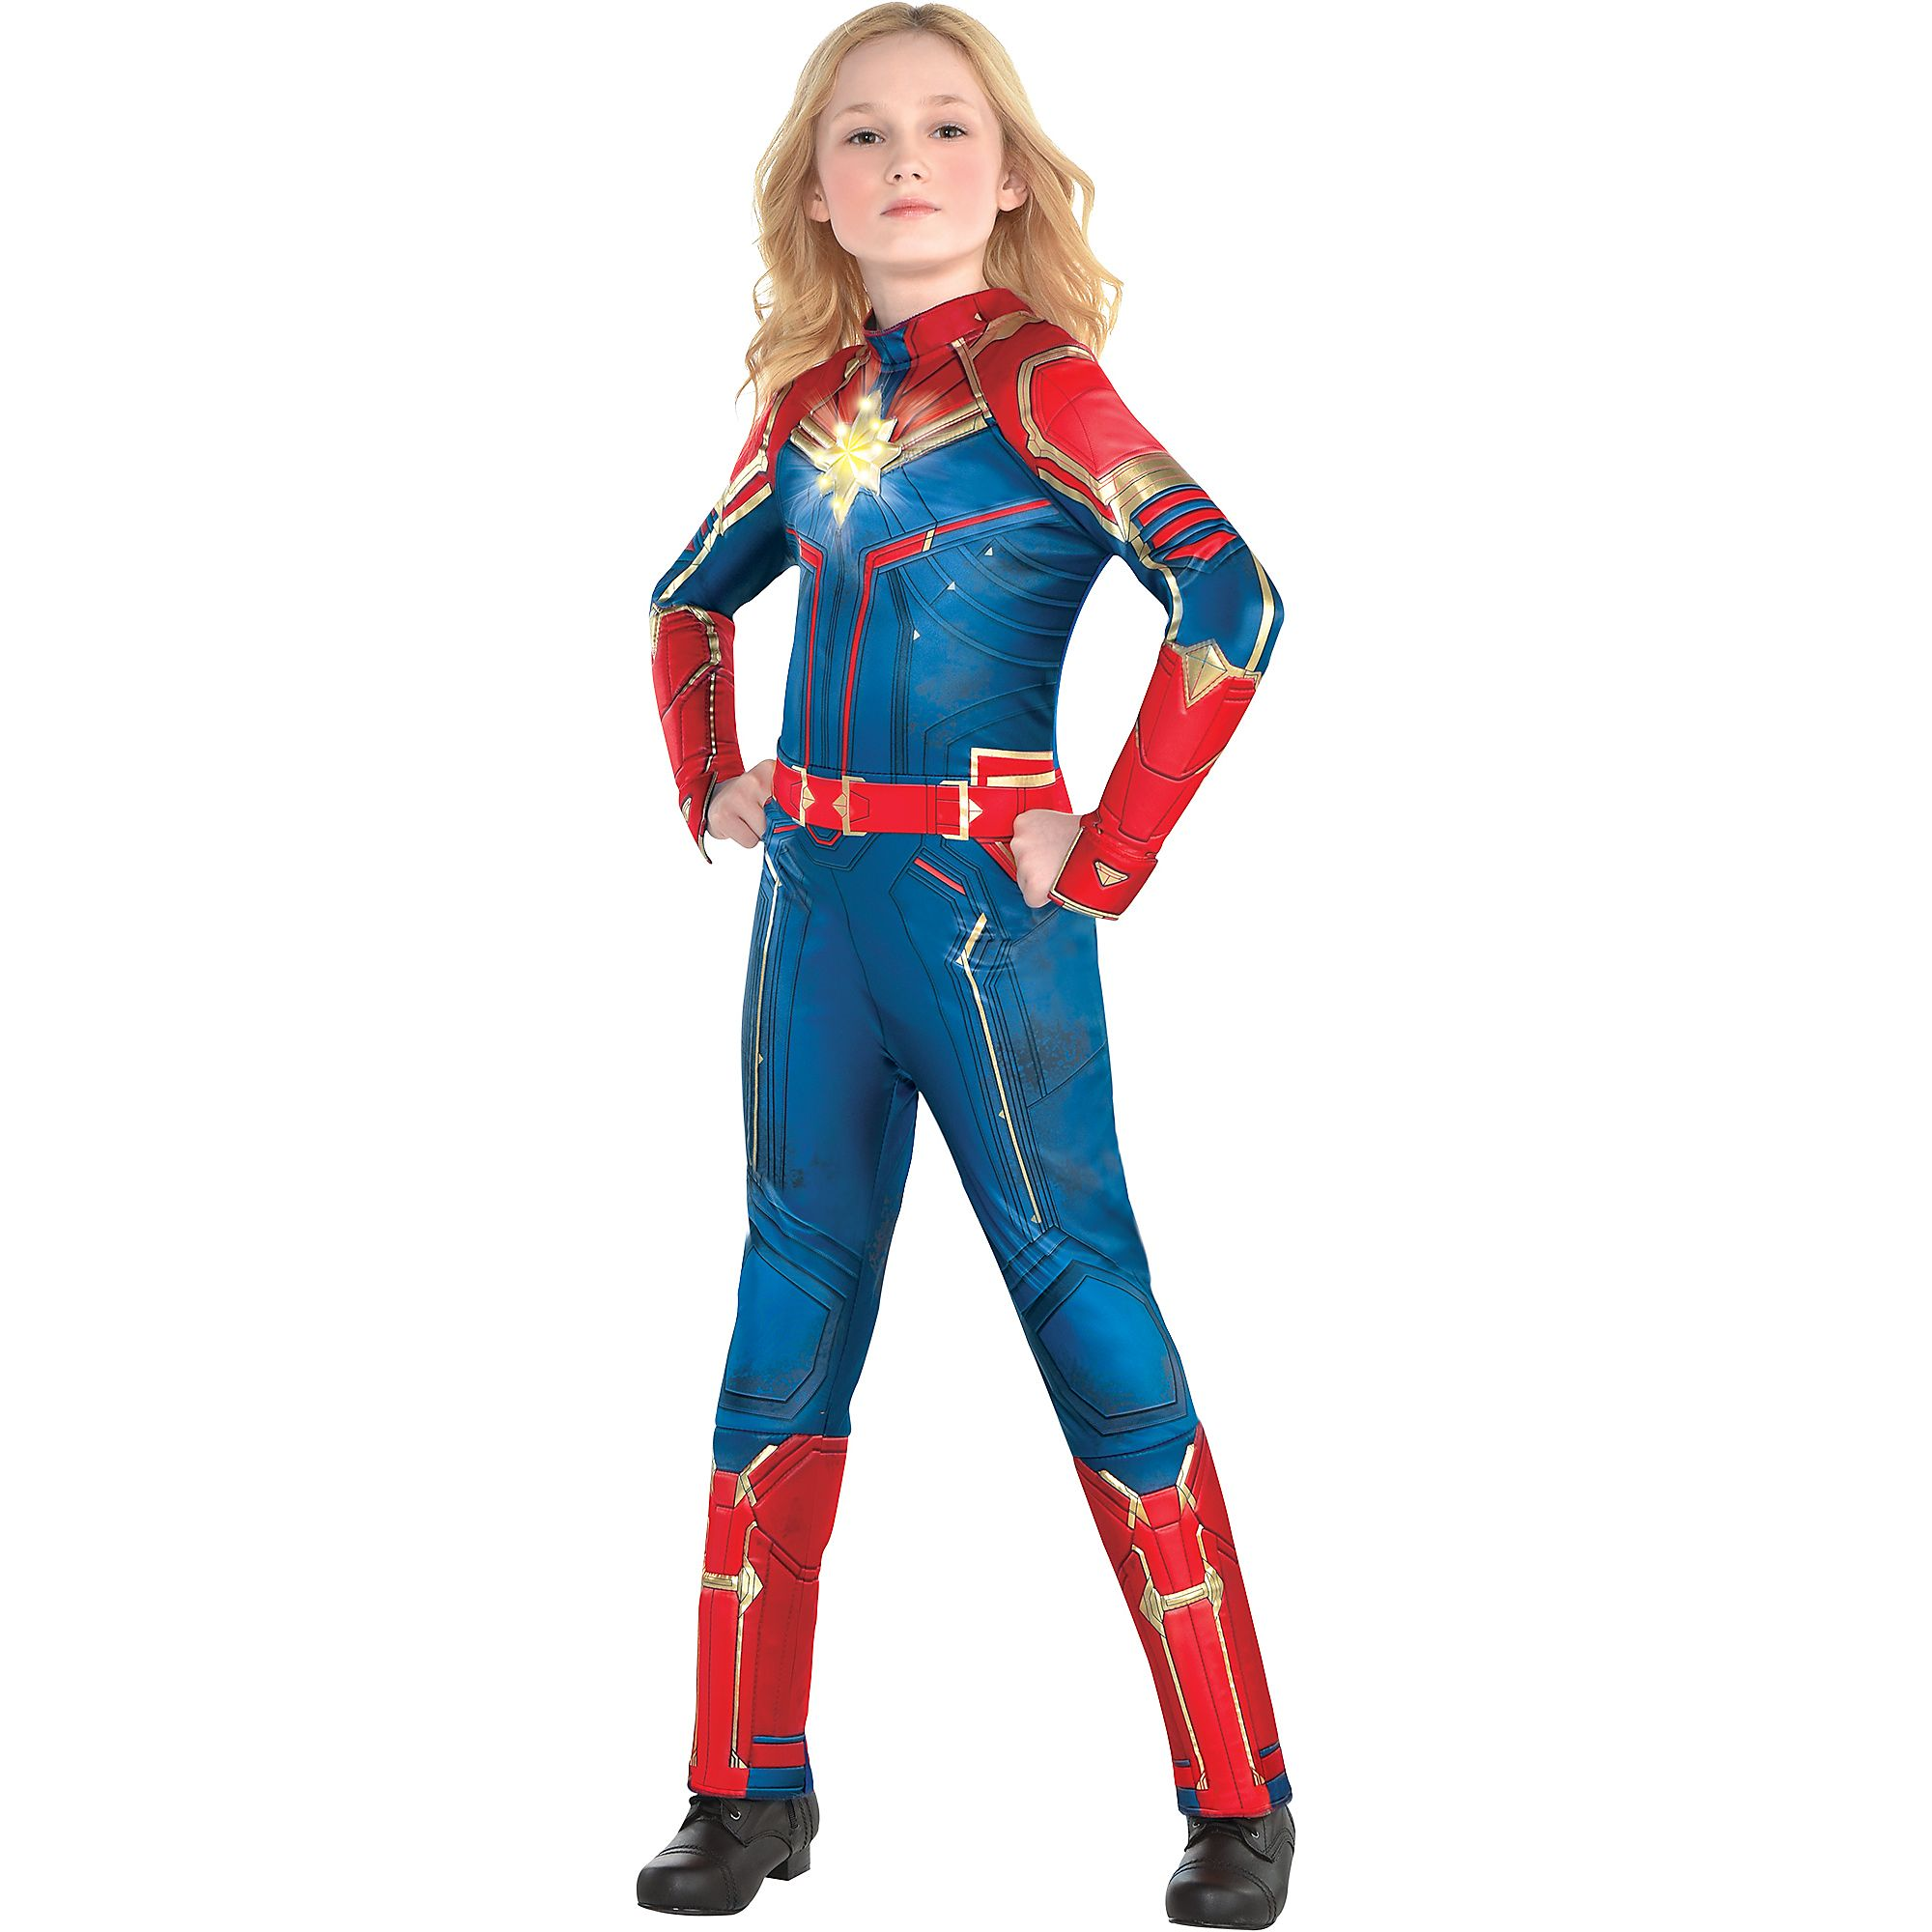 Halloween Costumes For Girls.Details About Girls Light Up Captain Marvel Halloween Costume Size Large Jumpsuit Superhero